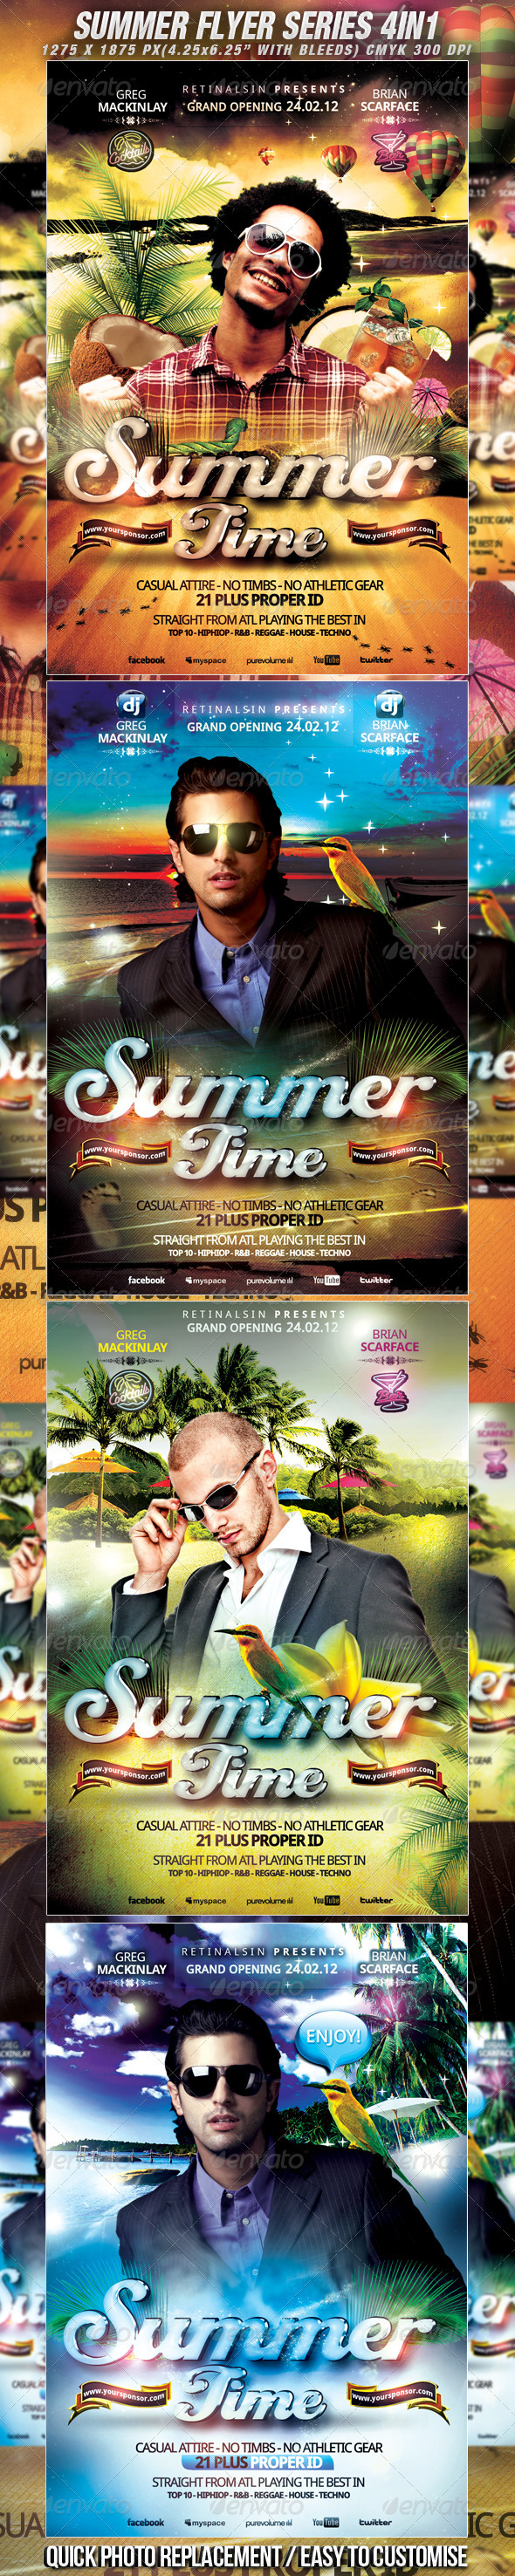 GraphicRiver Summer Flyer Series 4in1 High Quality 2320821